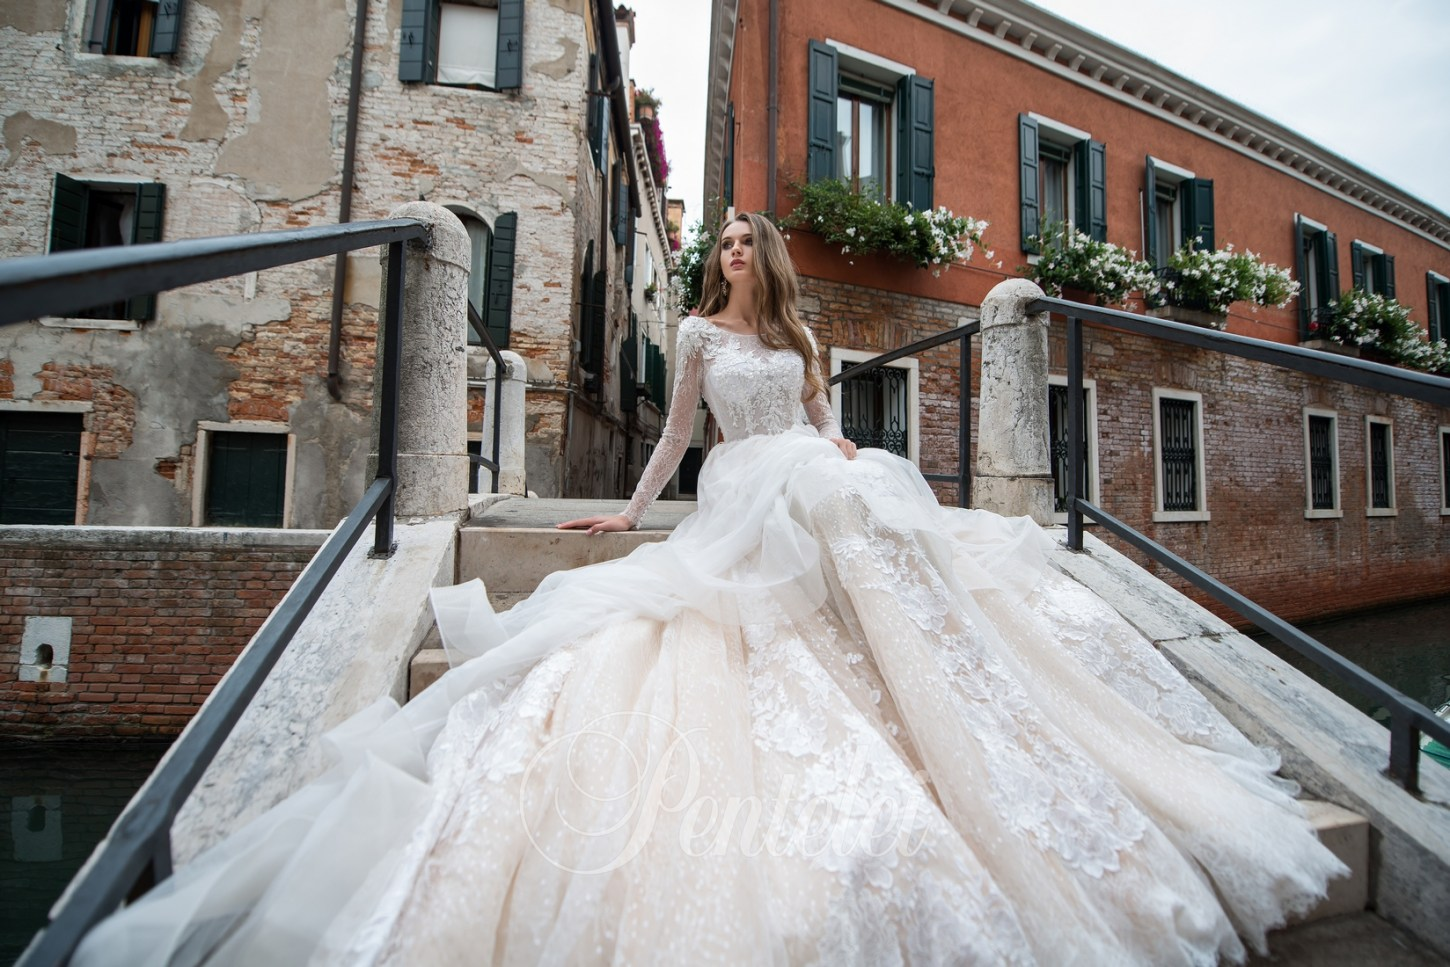 2213 | Buy wedding dresses wholesale from Pentelei